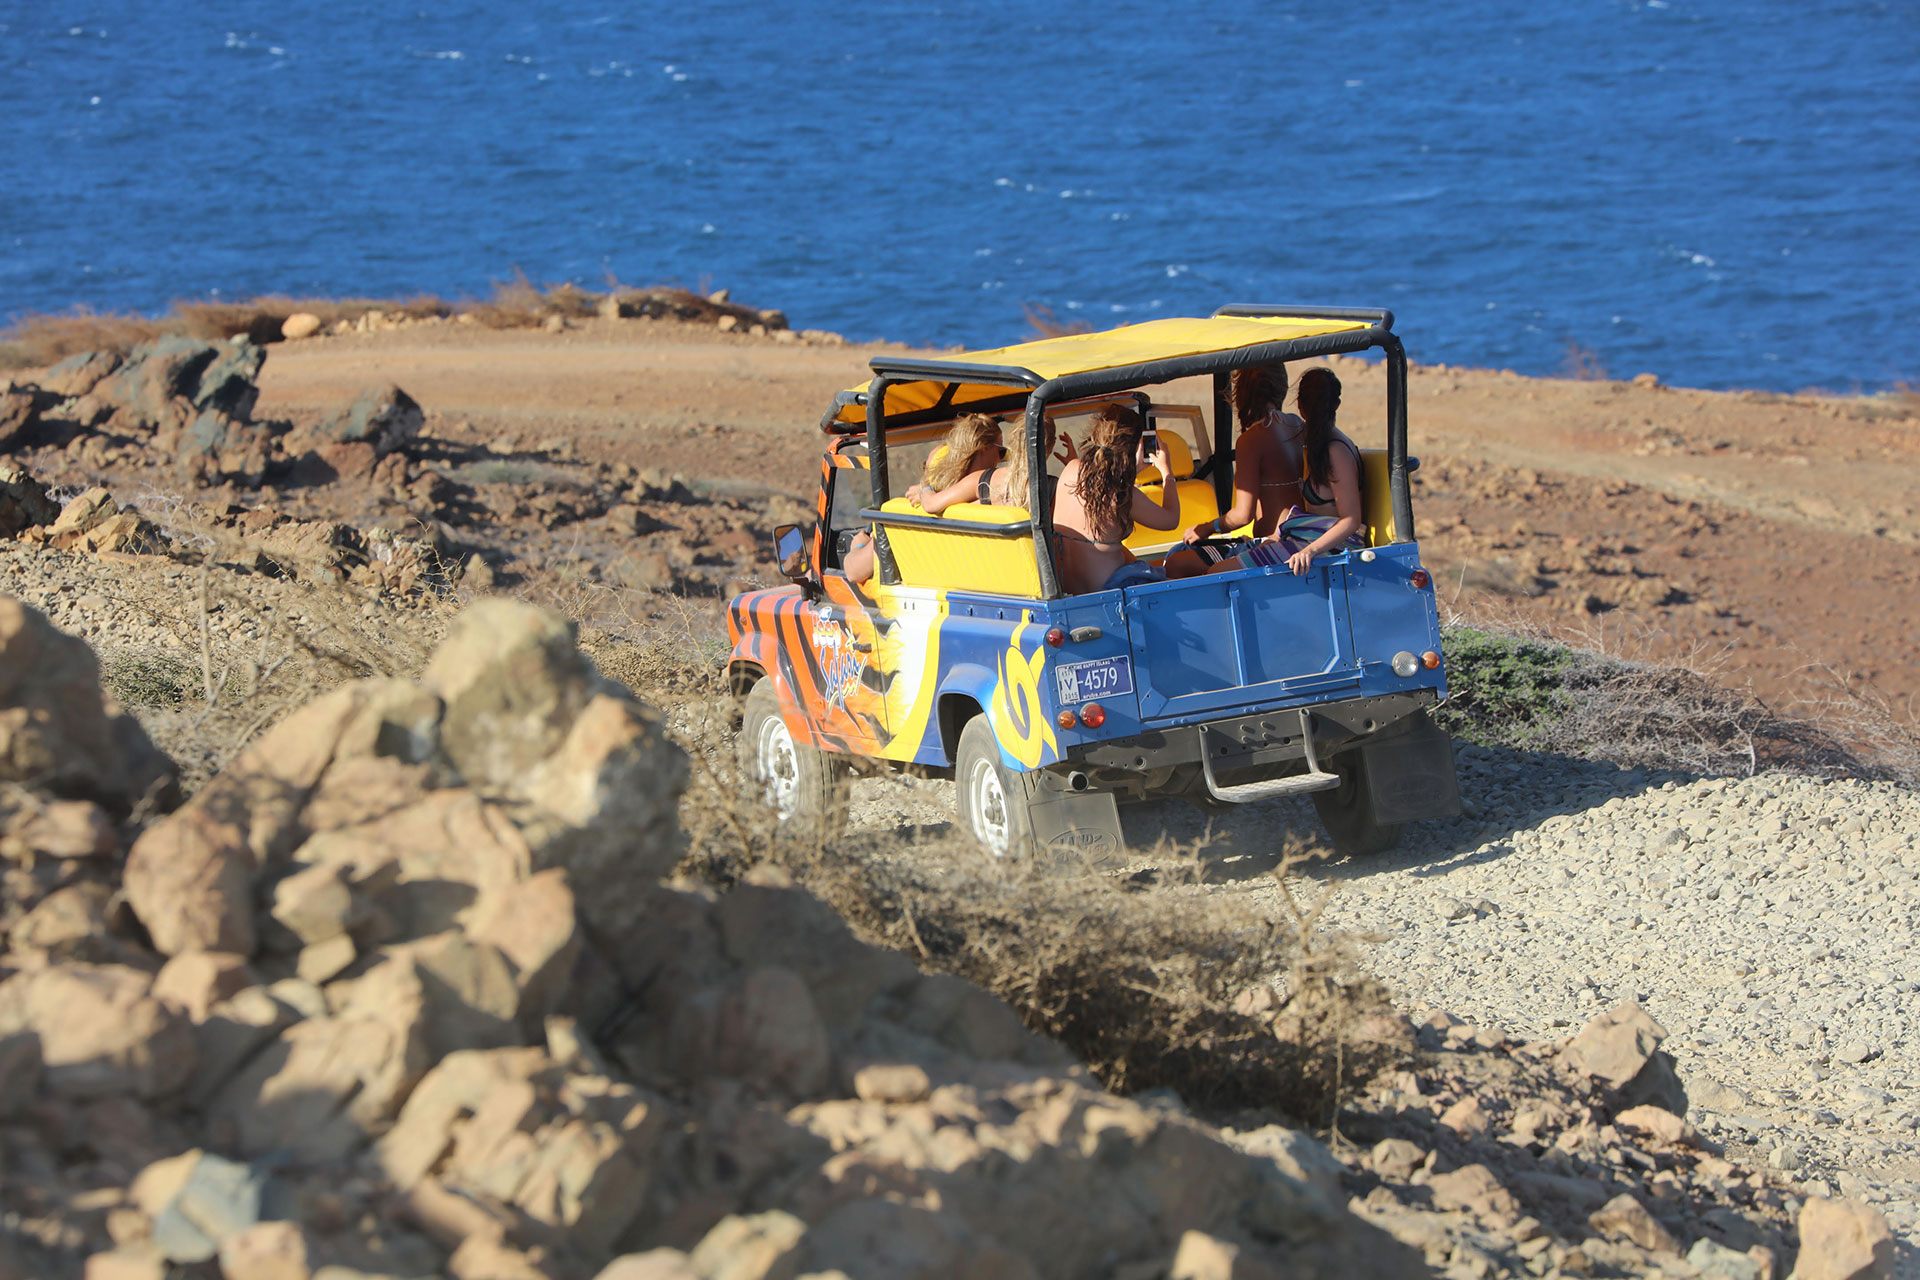 ATV Tour in Aruba; Courtesy of ABC Tours Aruba